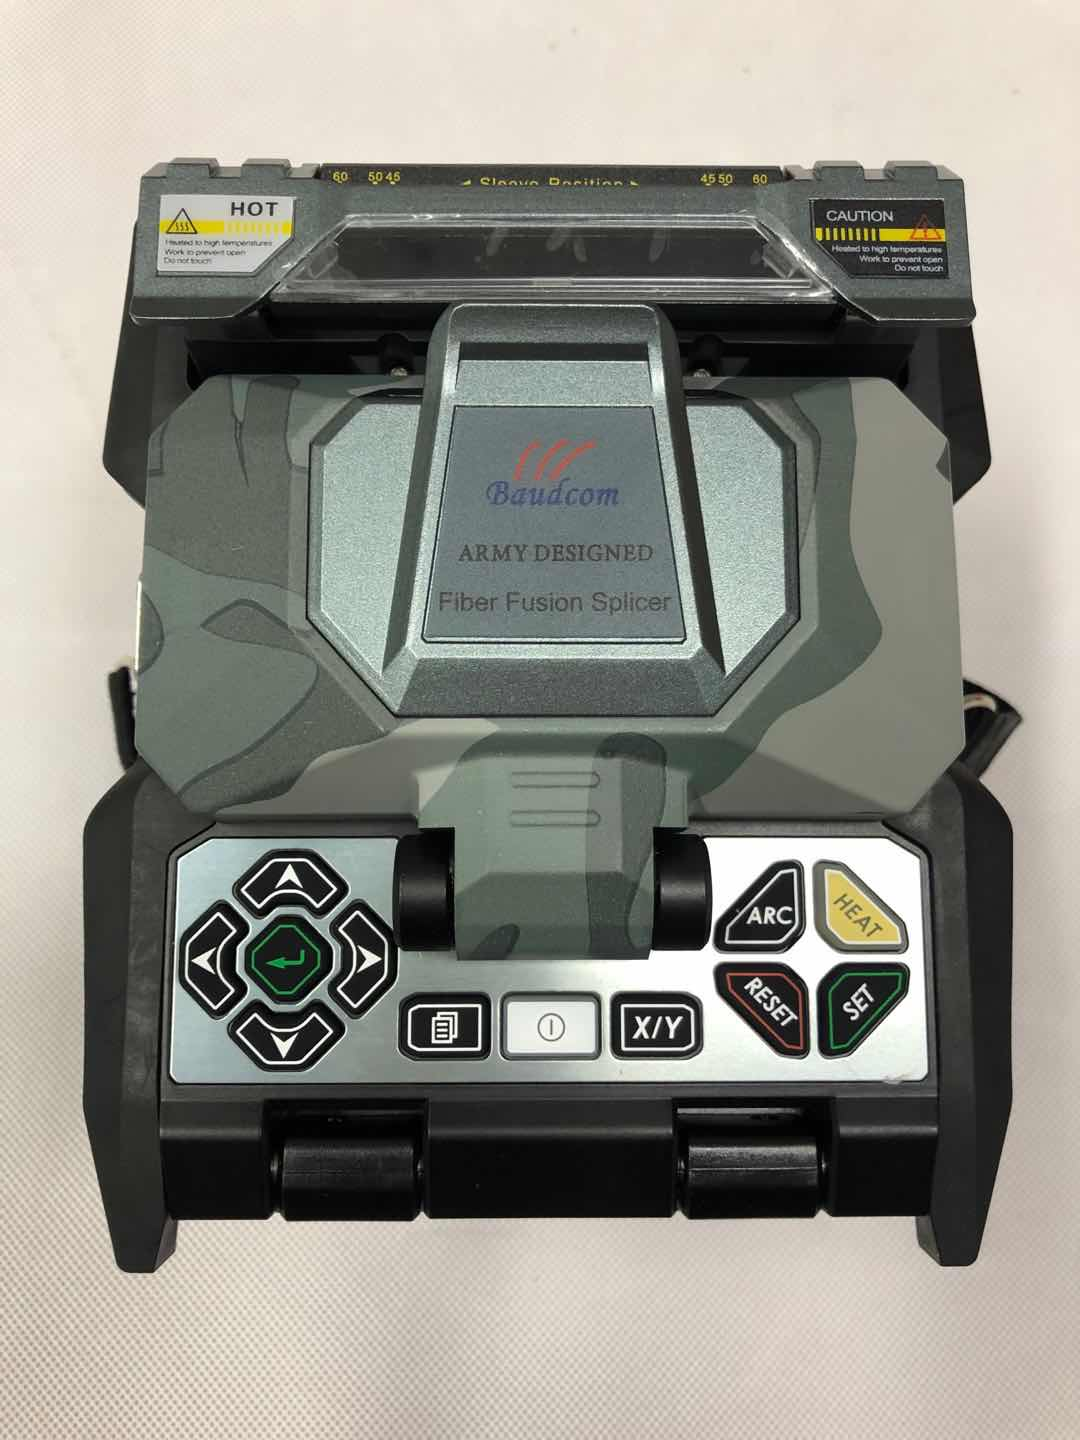 Highest Level Camouflage Six-Head Fiber Fusion Splicer